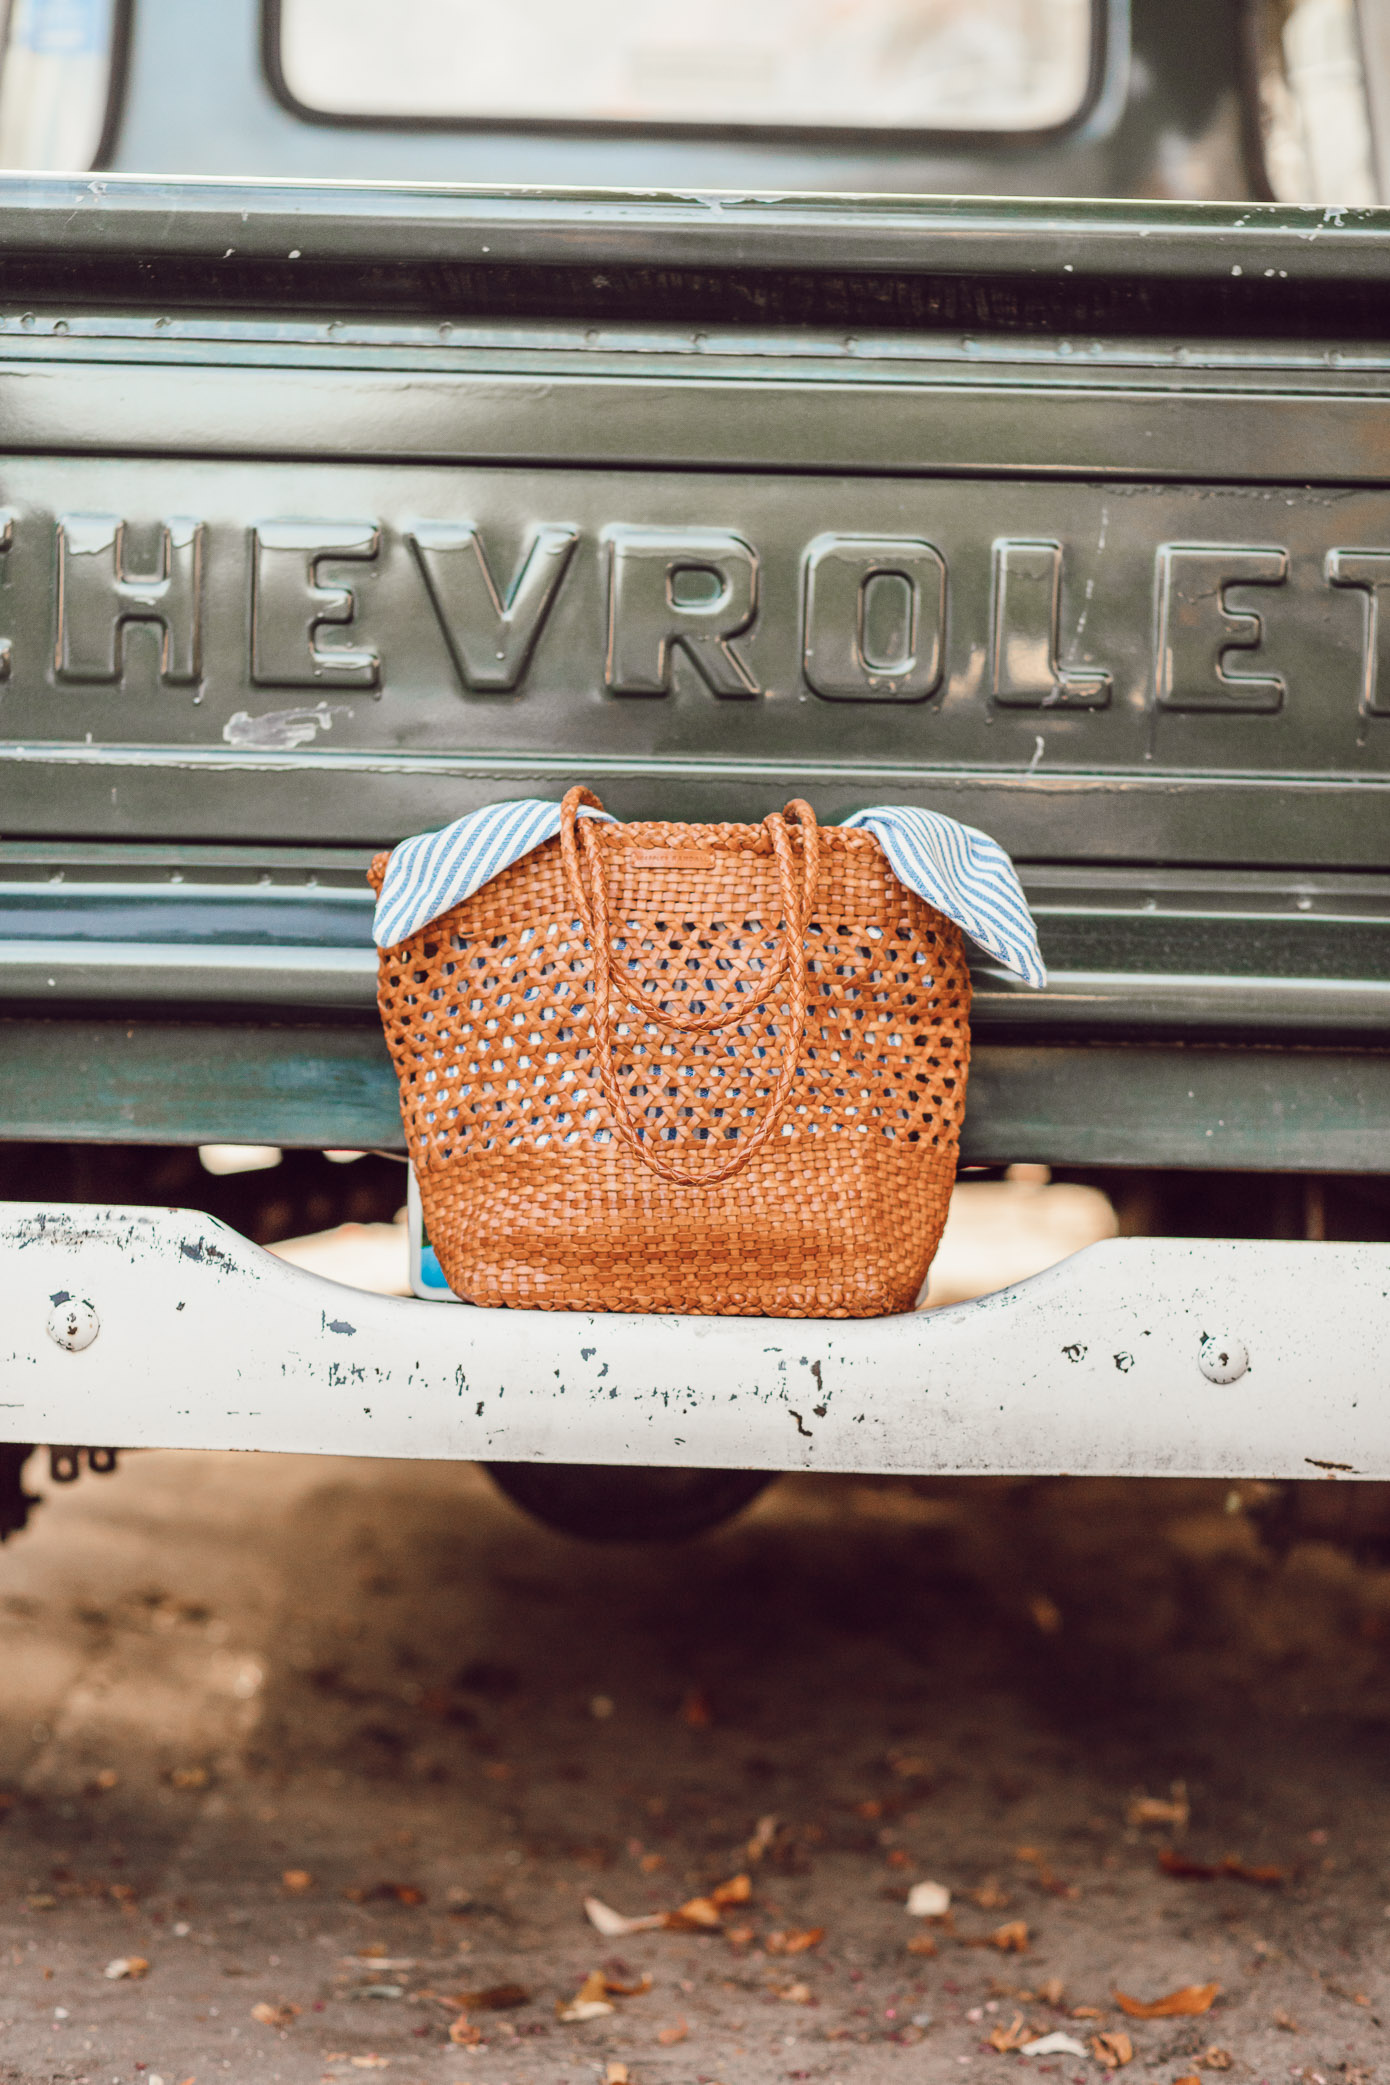 Loeffler Randall Maya Woven Leather Shopper Tote styled on Louella Reese Blog